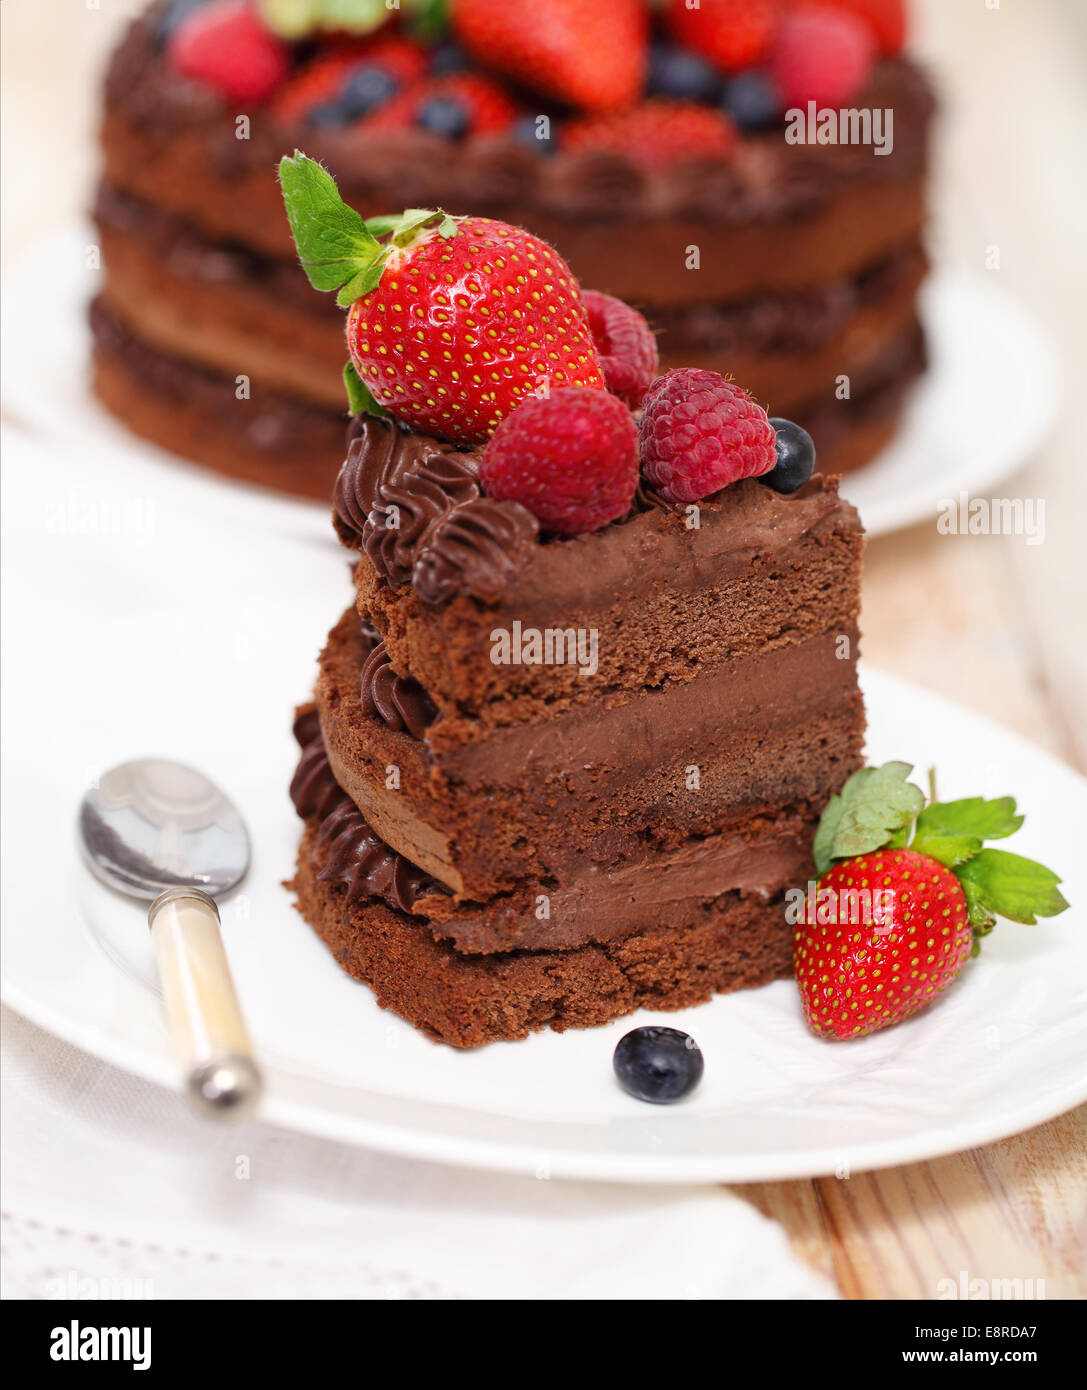 Light icing for chocolate cake